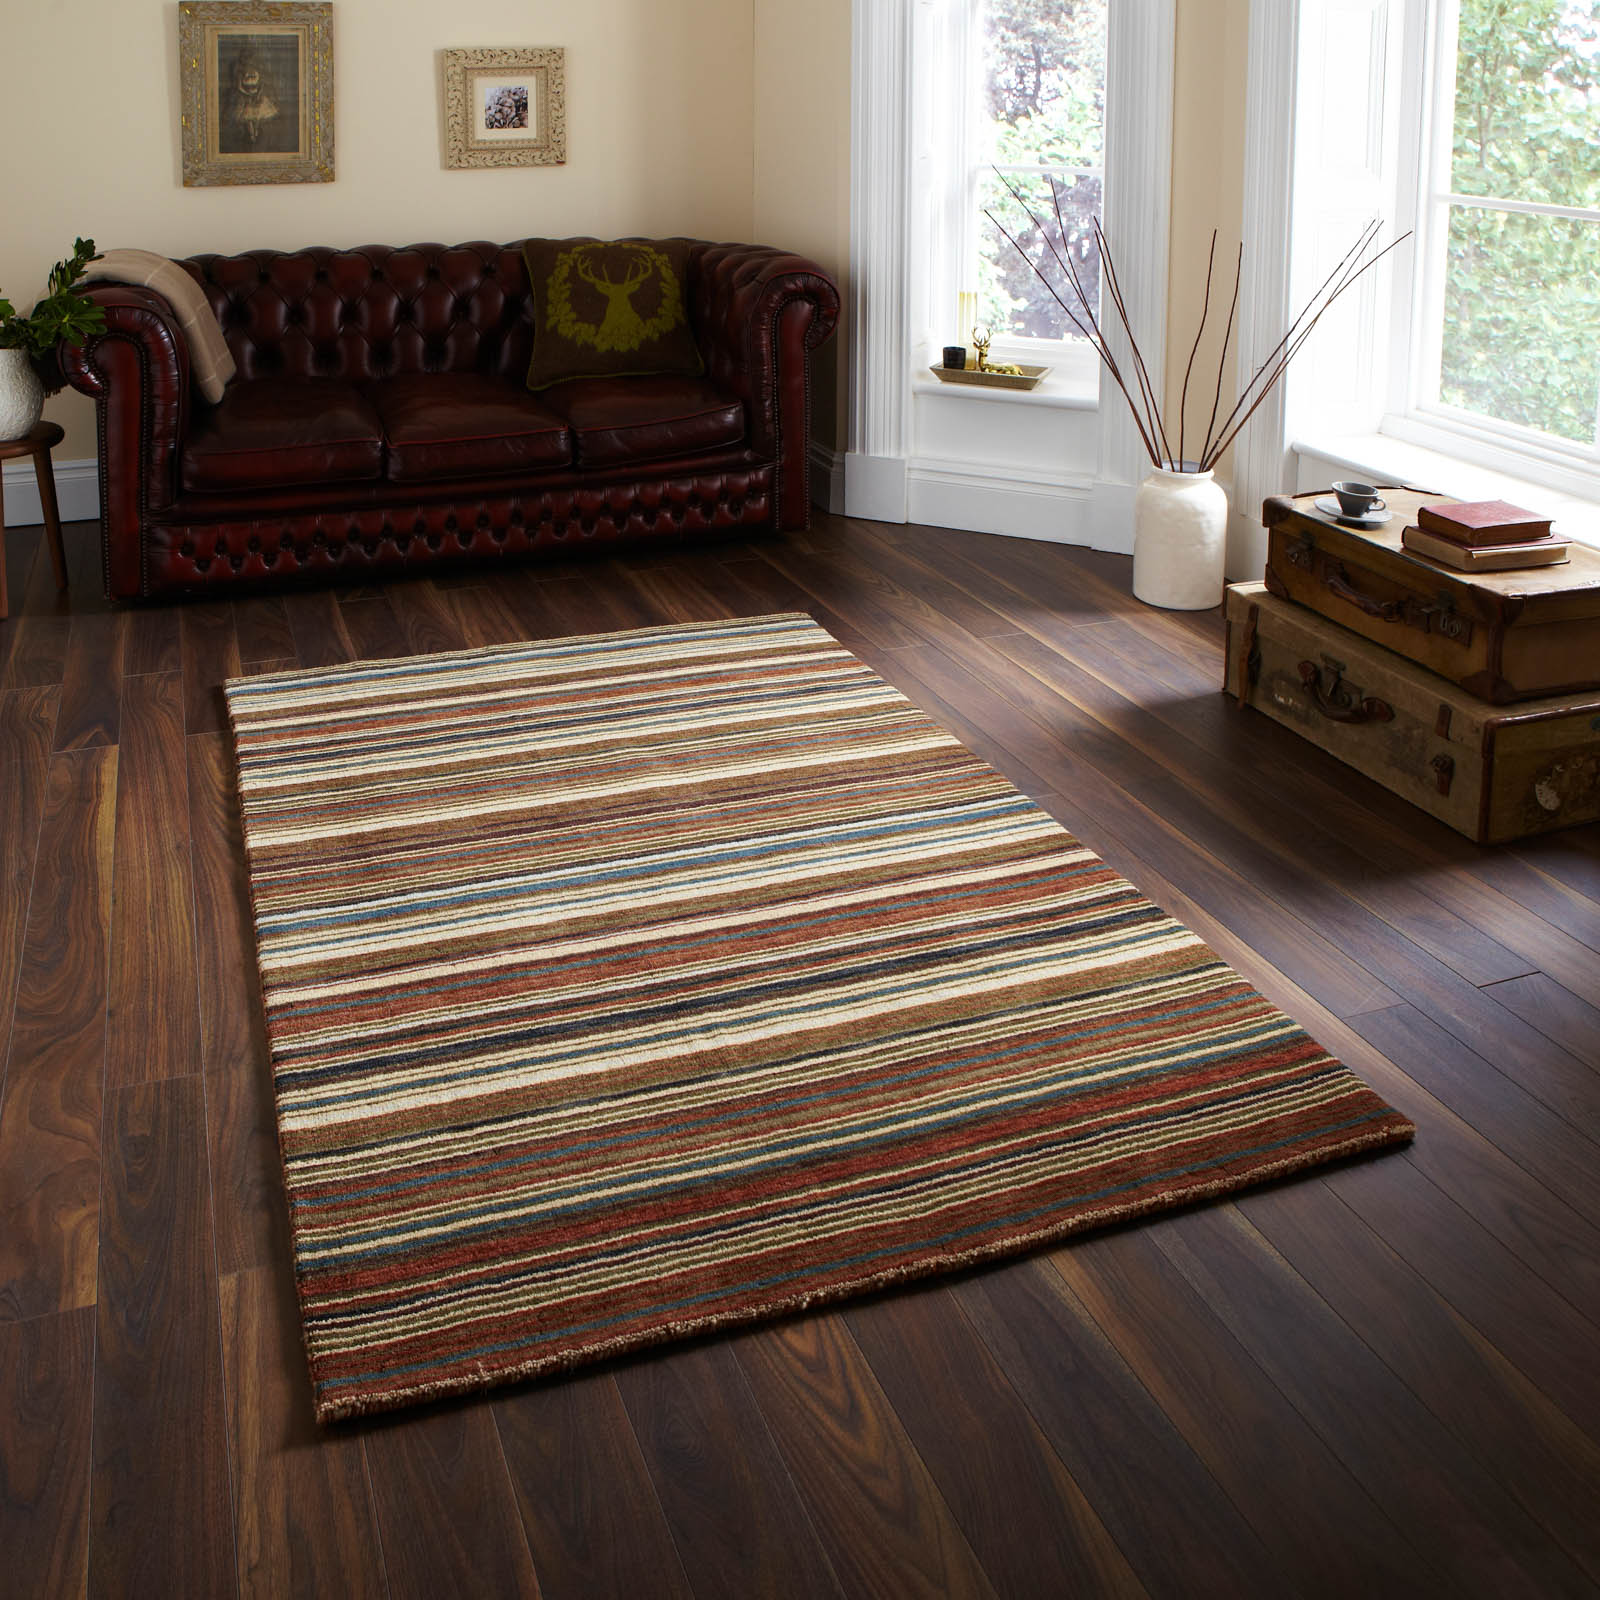 Oxford Rugs OX 10 Stripes in Natural Multi